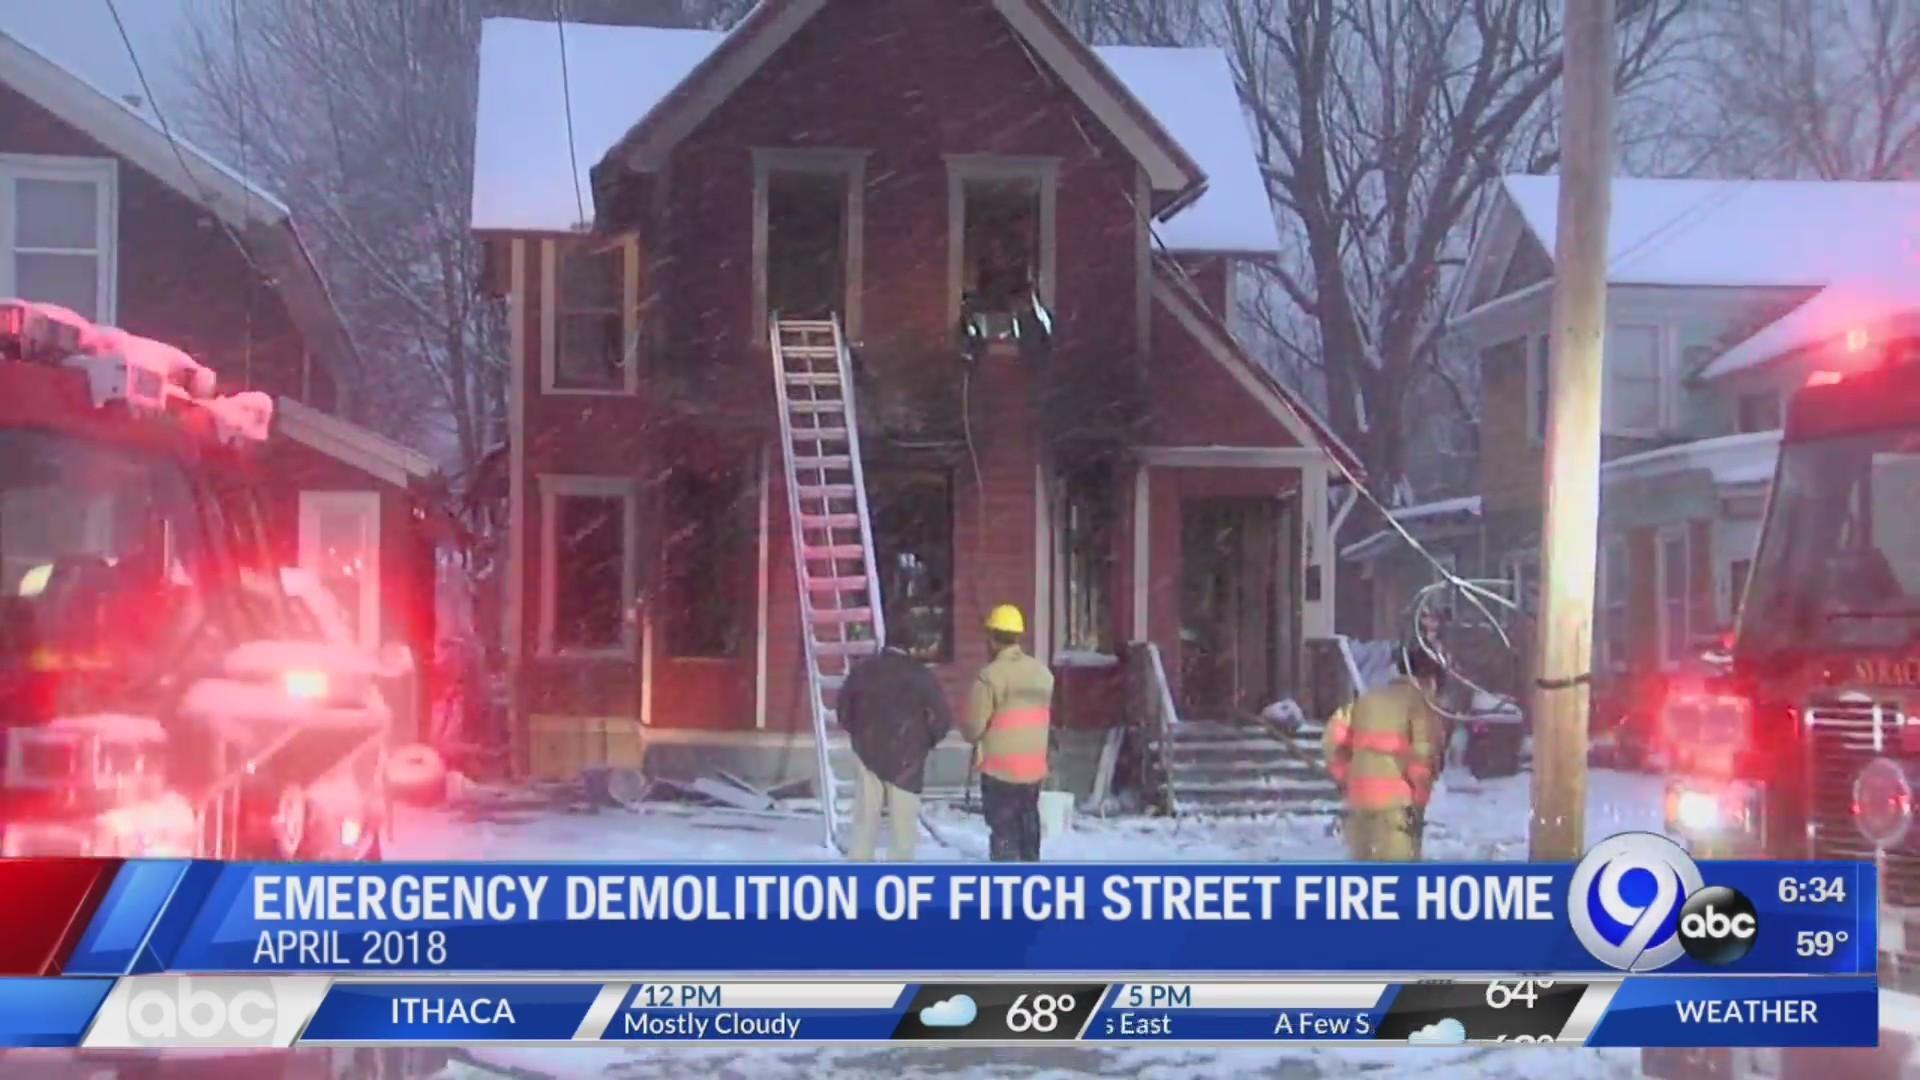 Fitch_Street_home_destroyed_by_arson_set_0_20190510131021